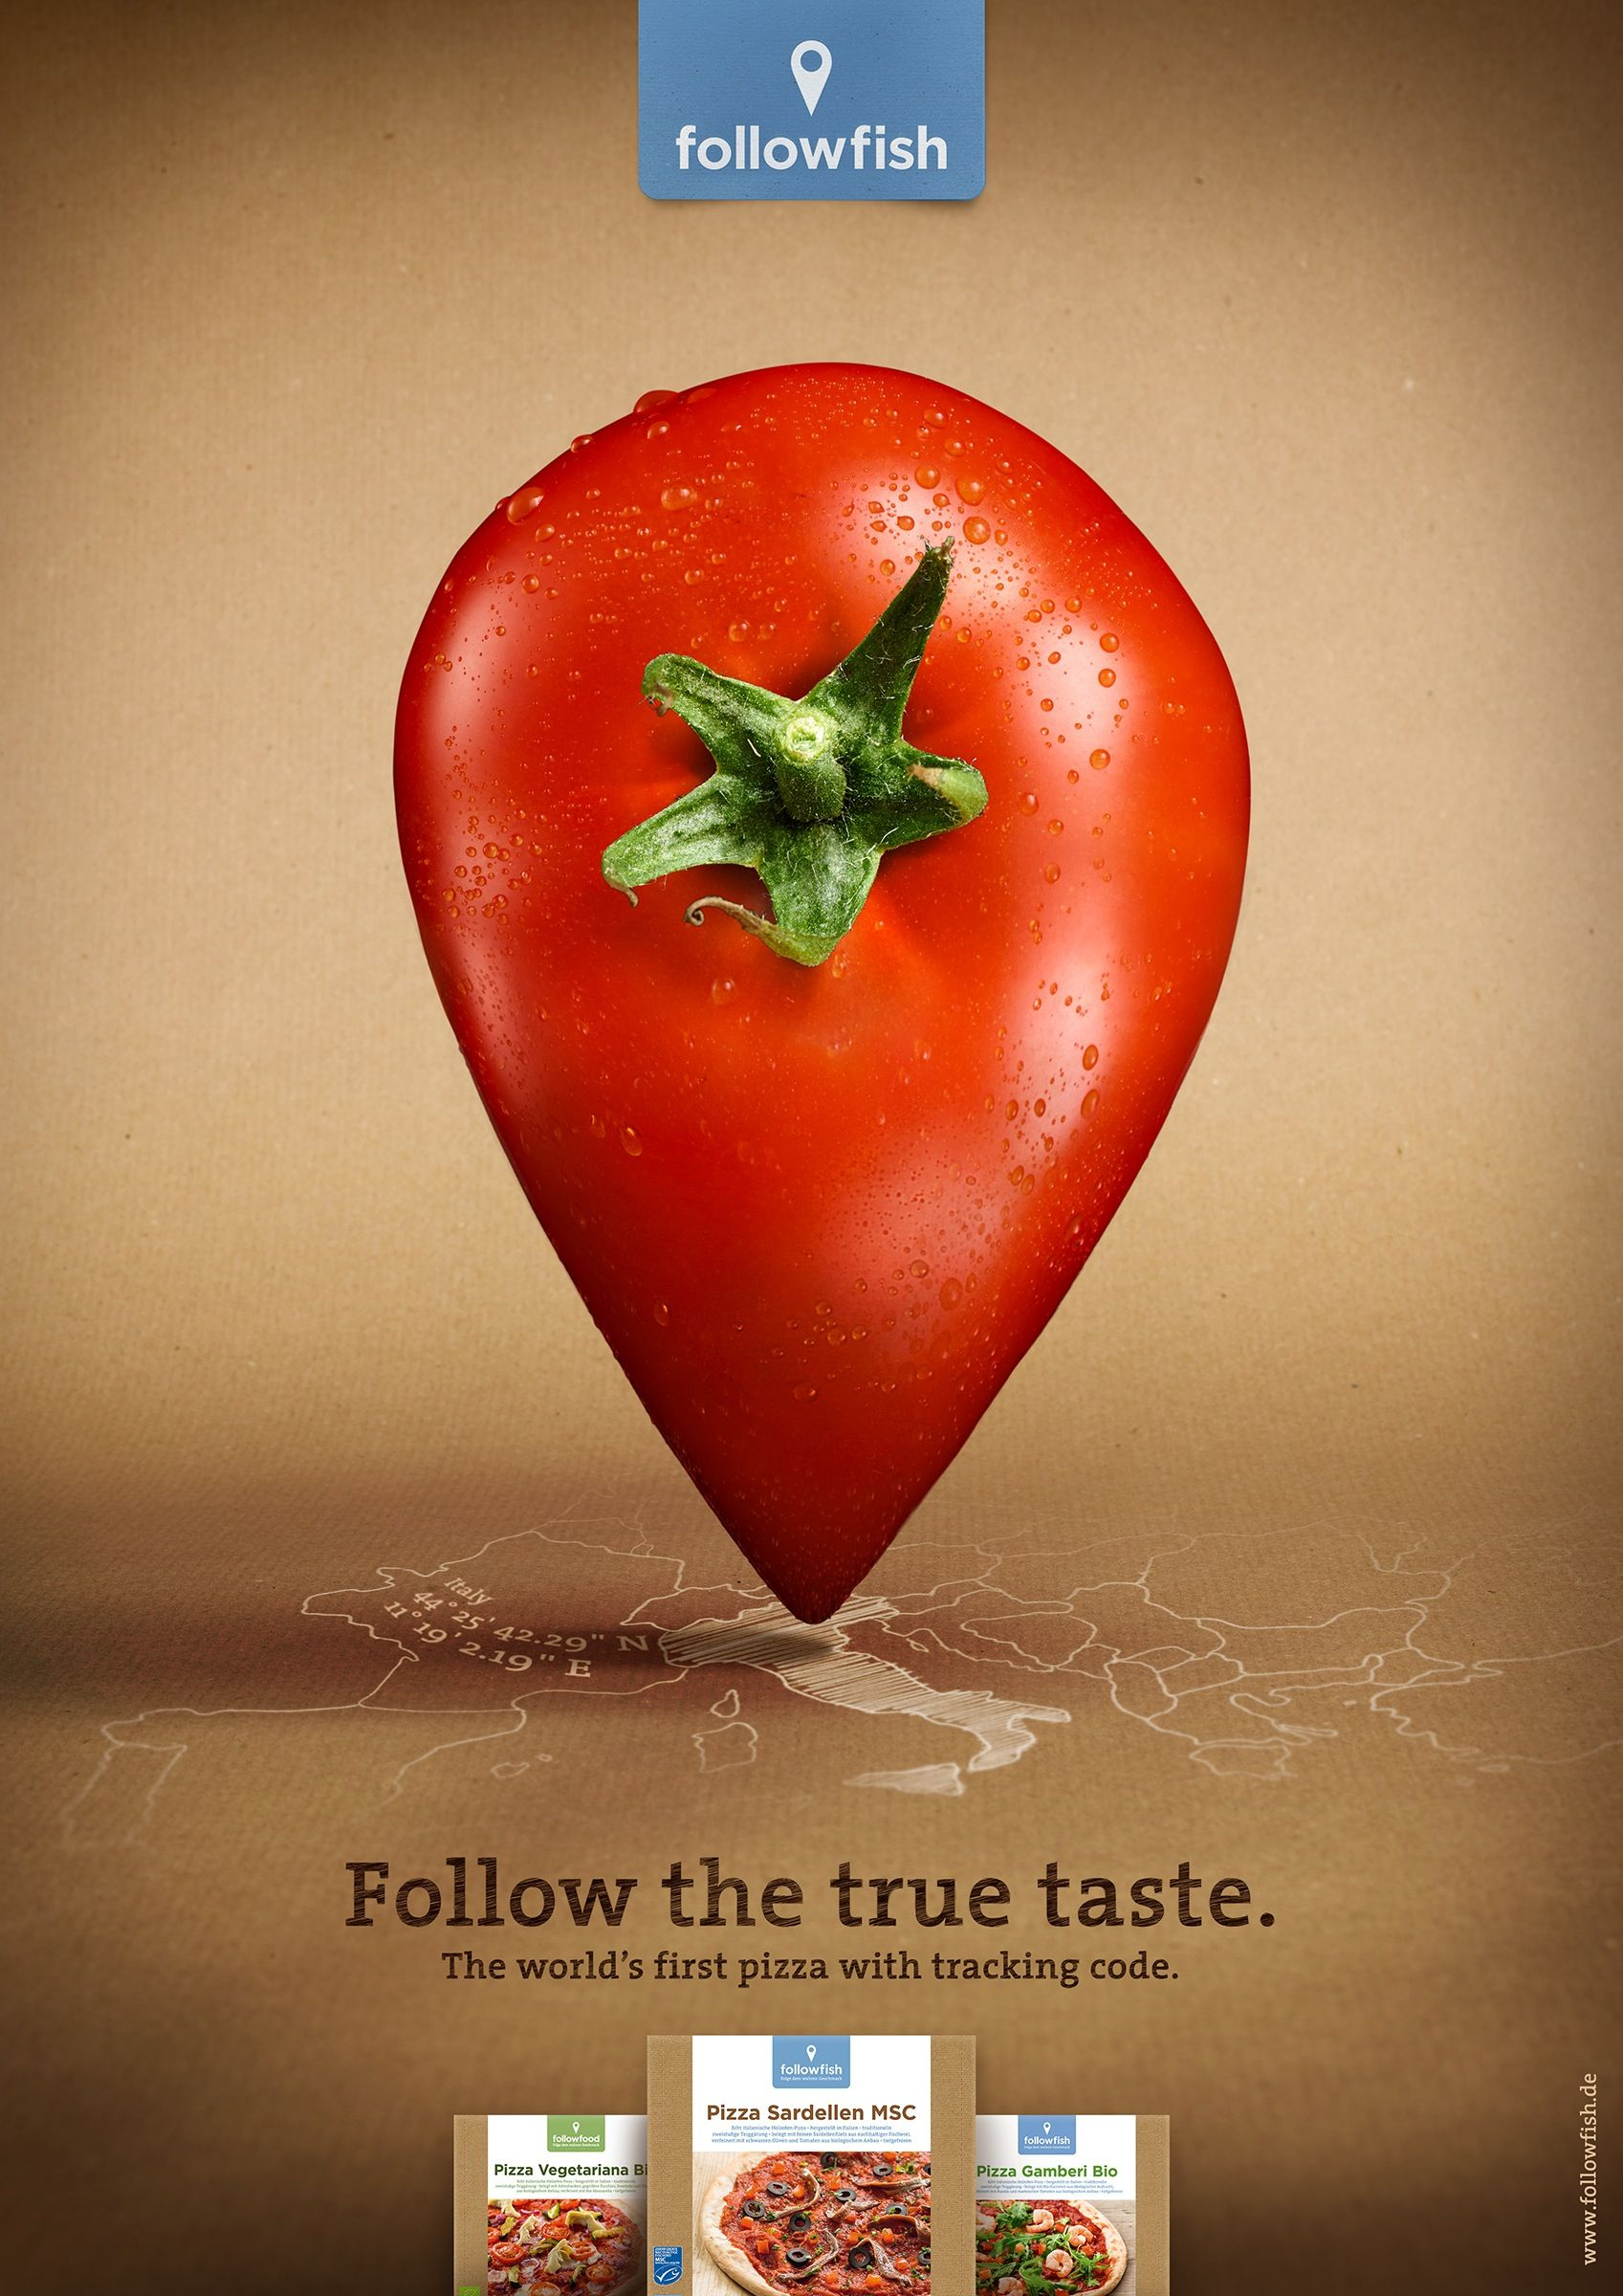 Tomato Wuppertal Followfish Tomato Graphic Design Pinterest Werbung